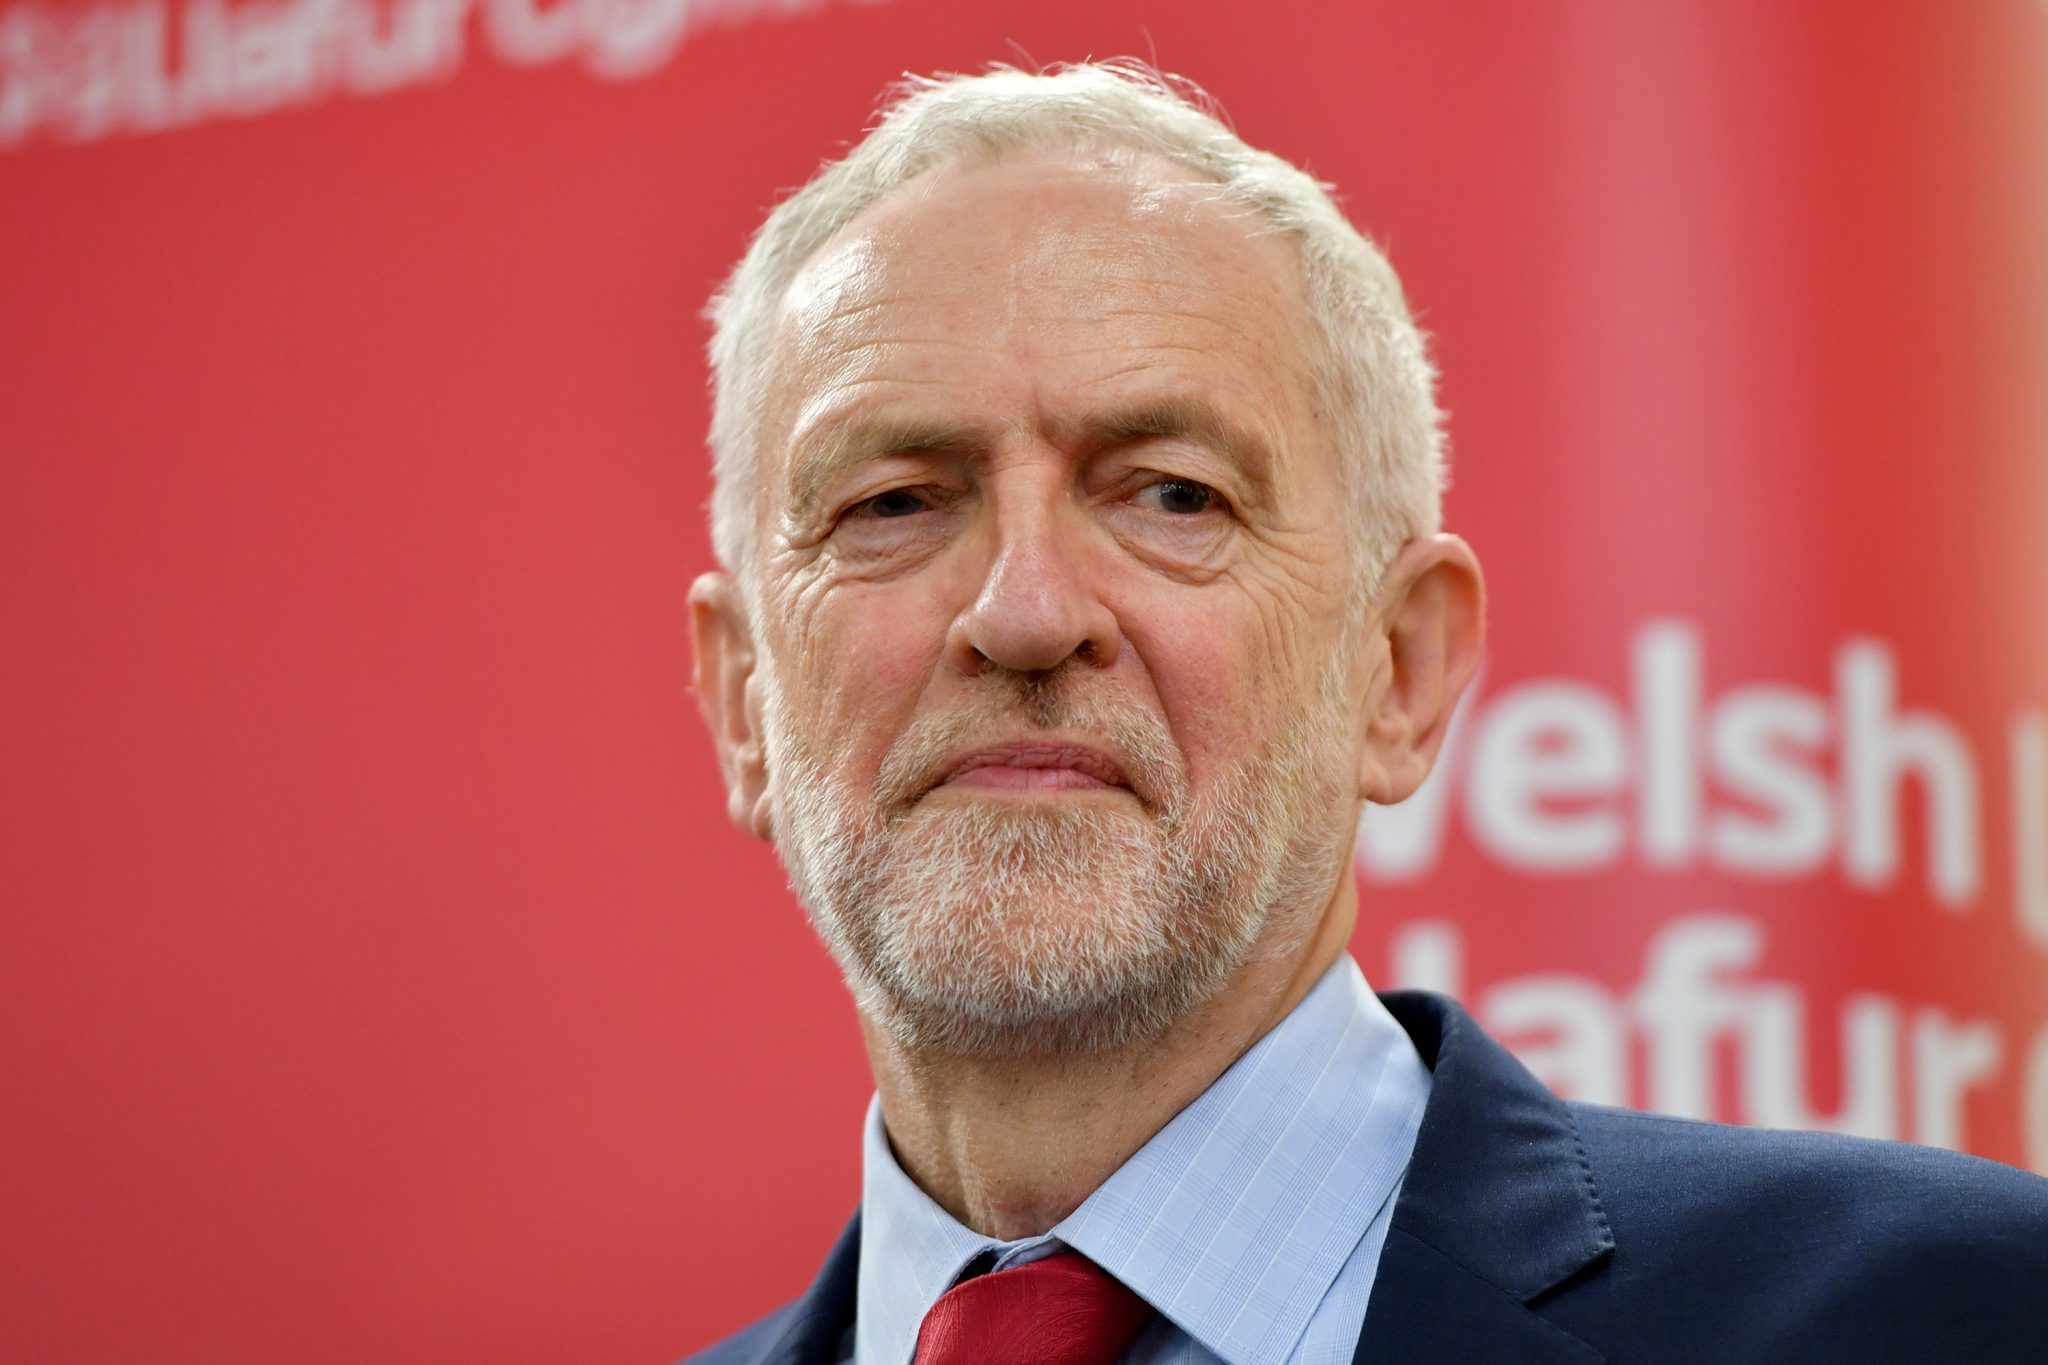 Jeremy Corbyn has defended Shamima Begum's right to legal aid (Credit: Anthony Devlin)